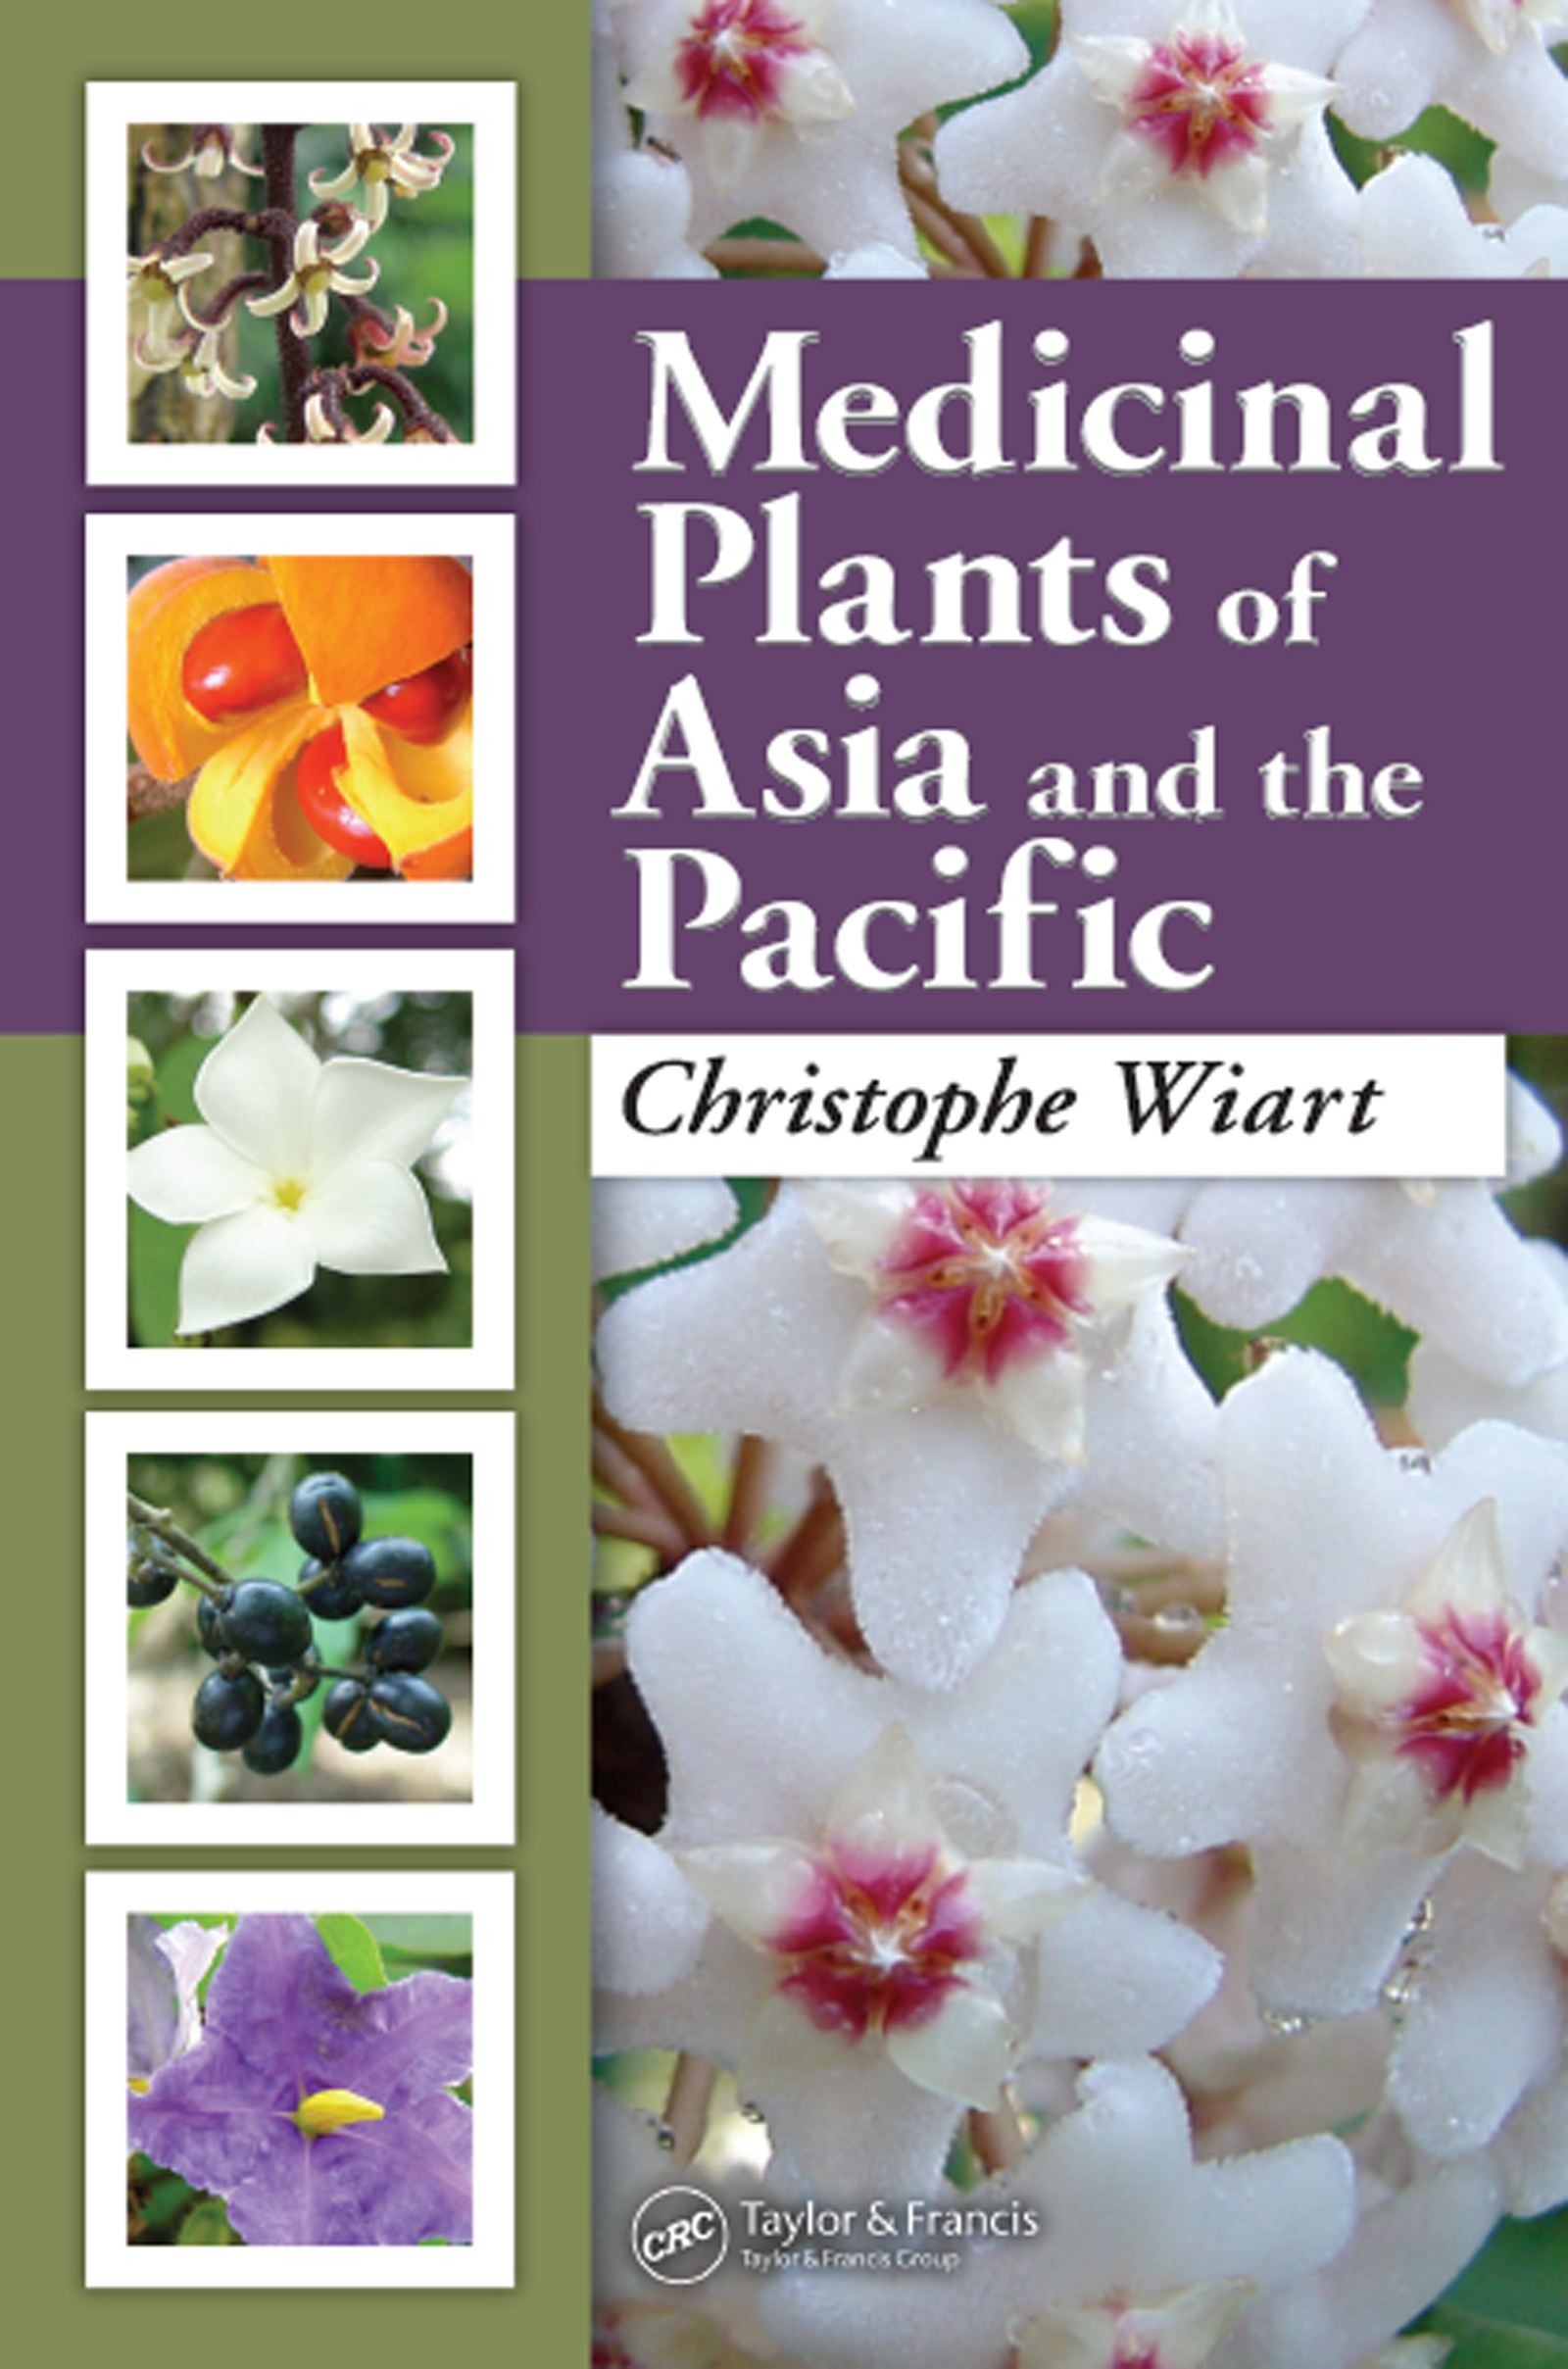 Medicinal Plants Classified in the Family Solanaceae